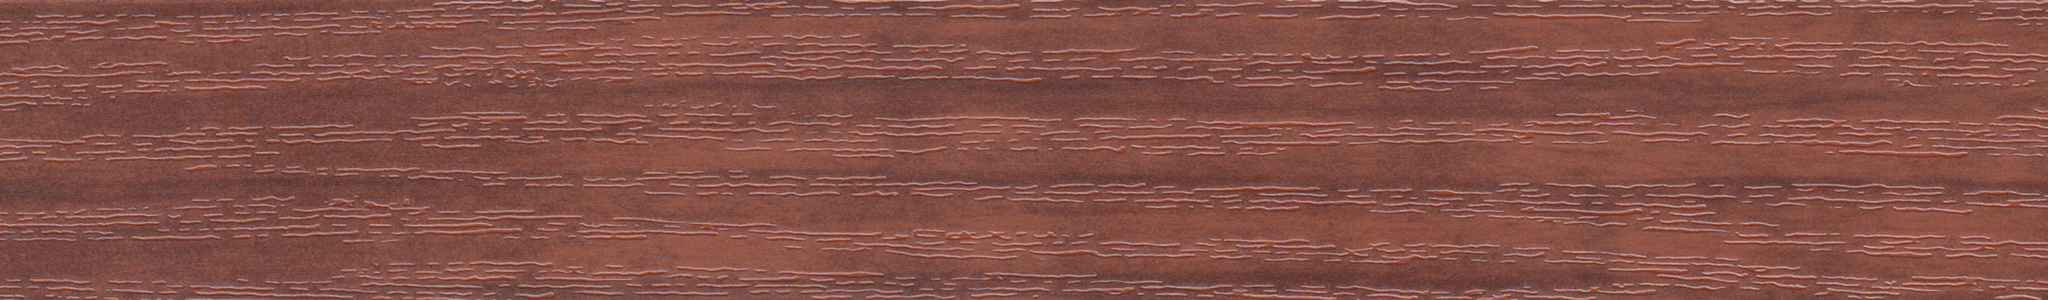 HD 28775 ABS Edge Mahogany Pore